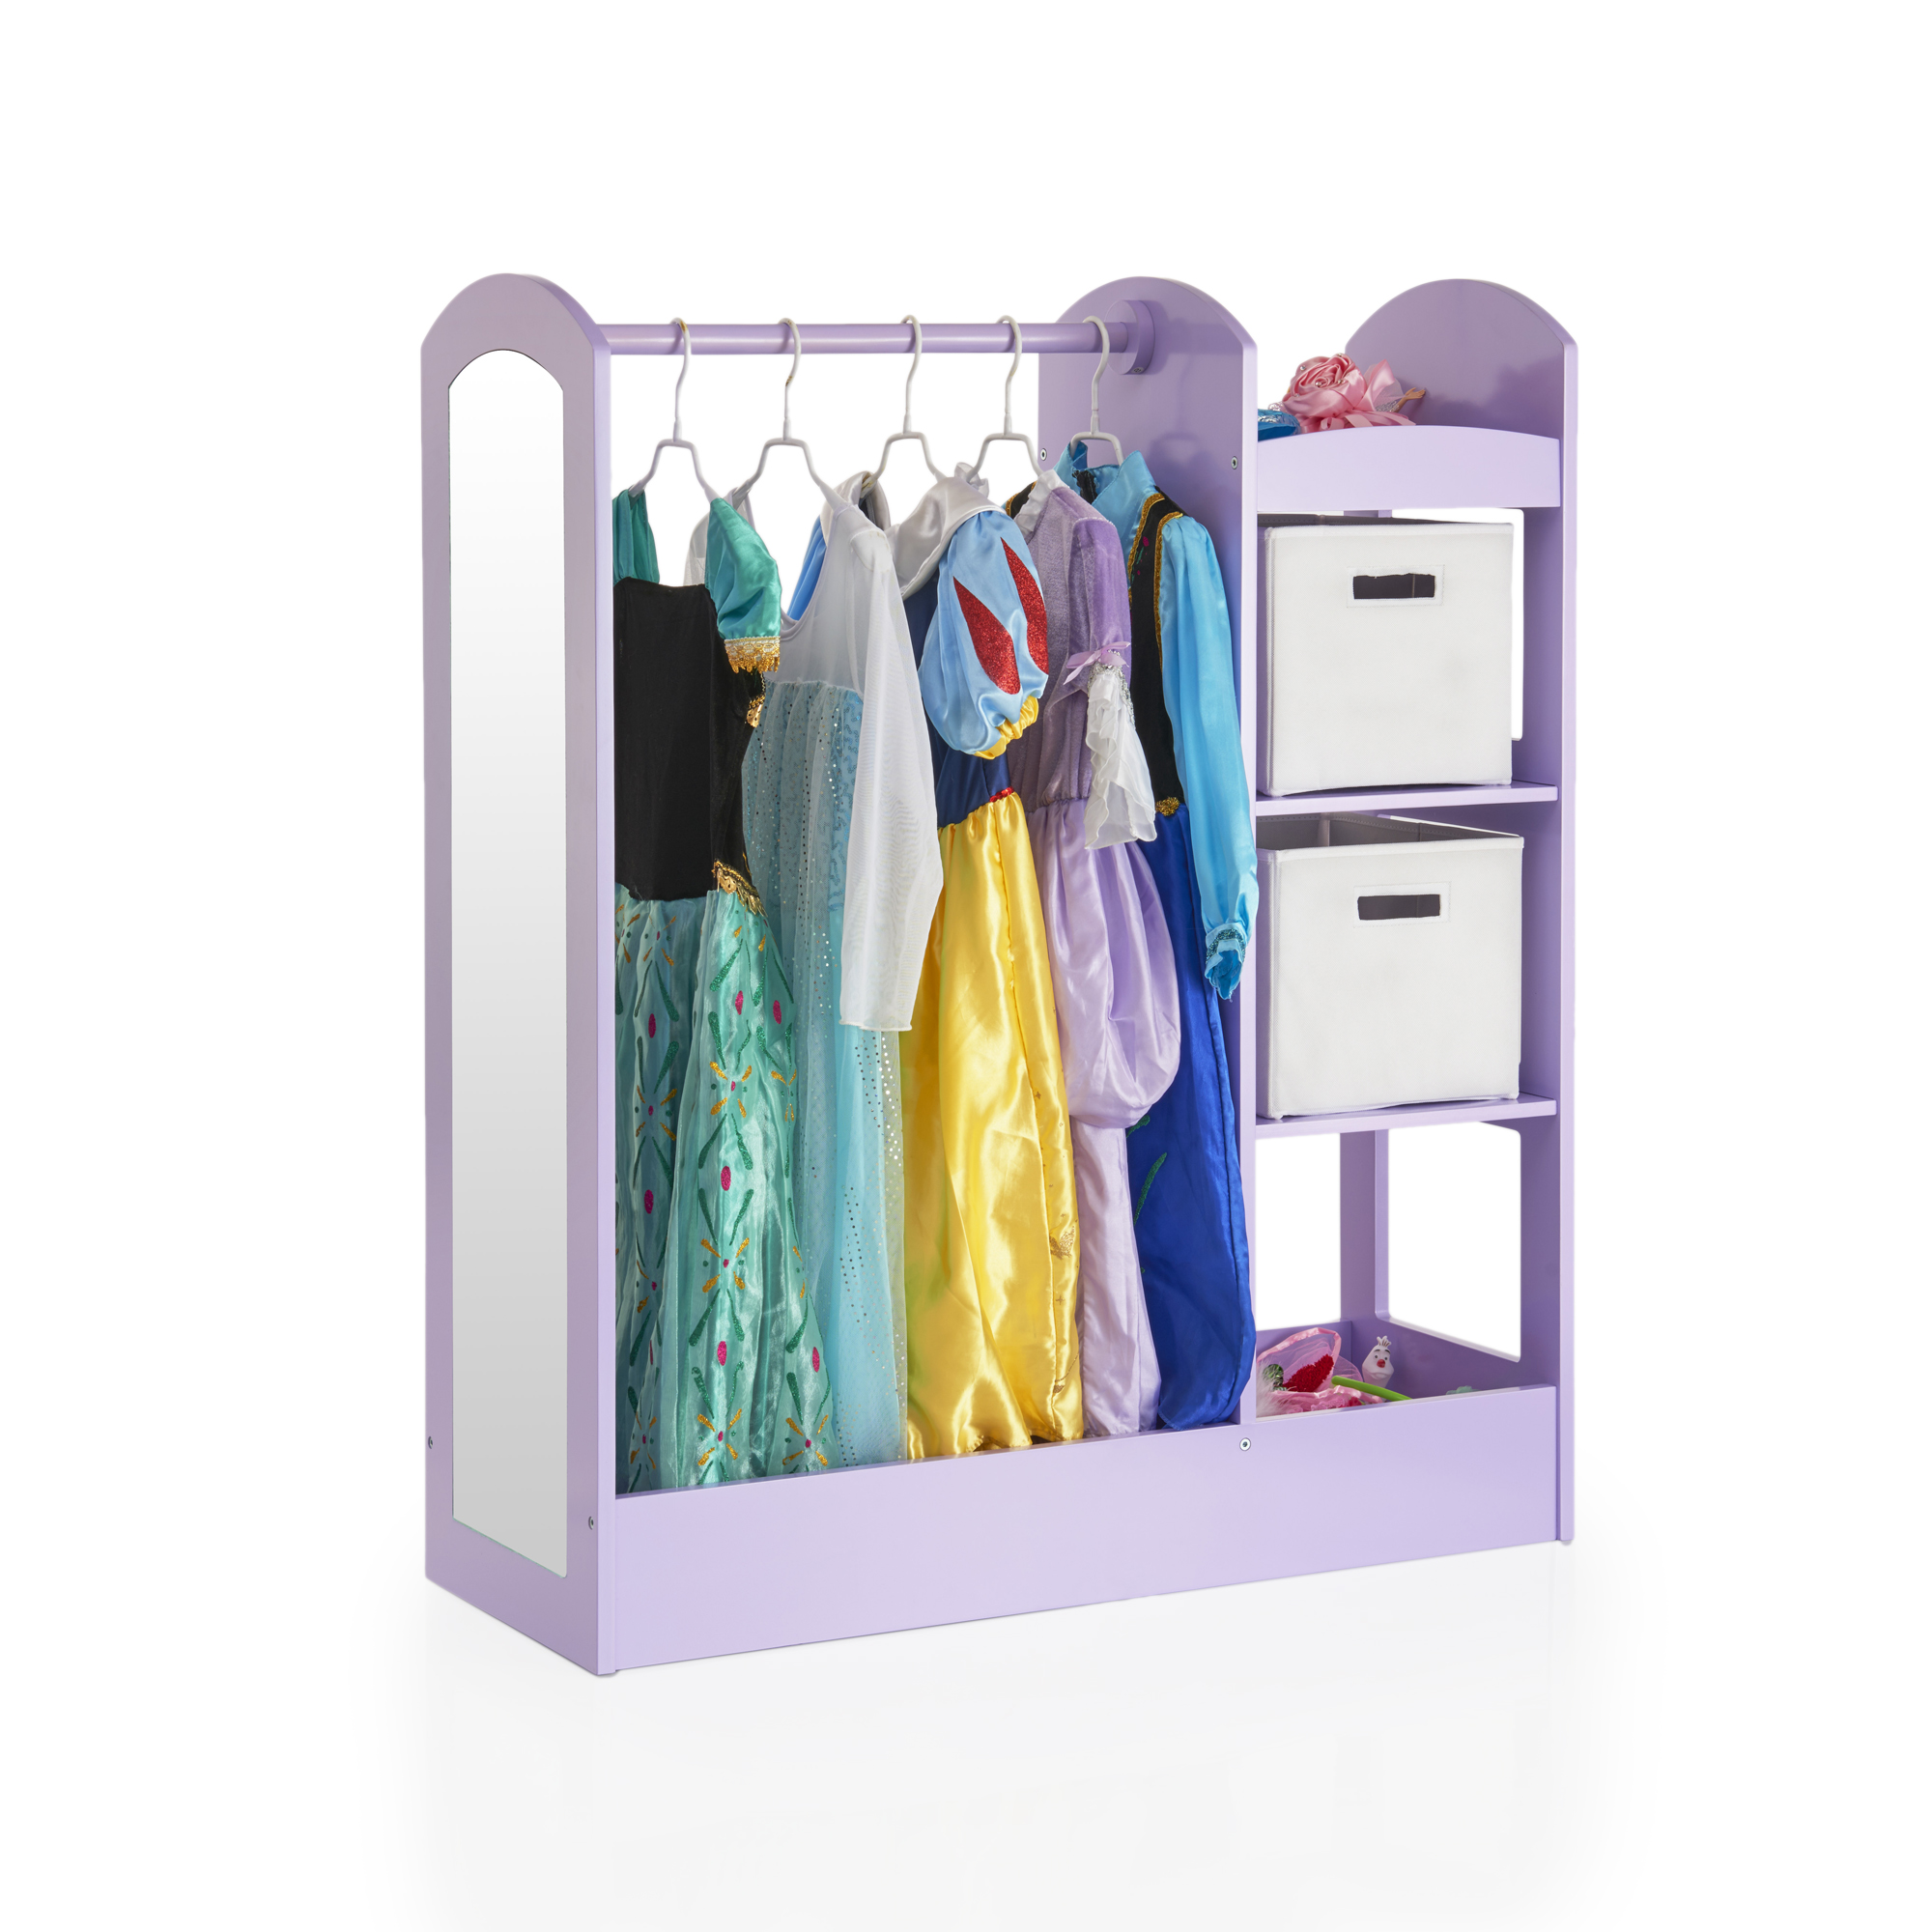 See and Store Dress-Up Center - Lavender